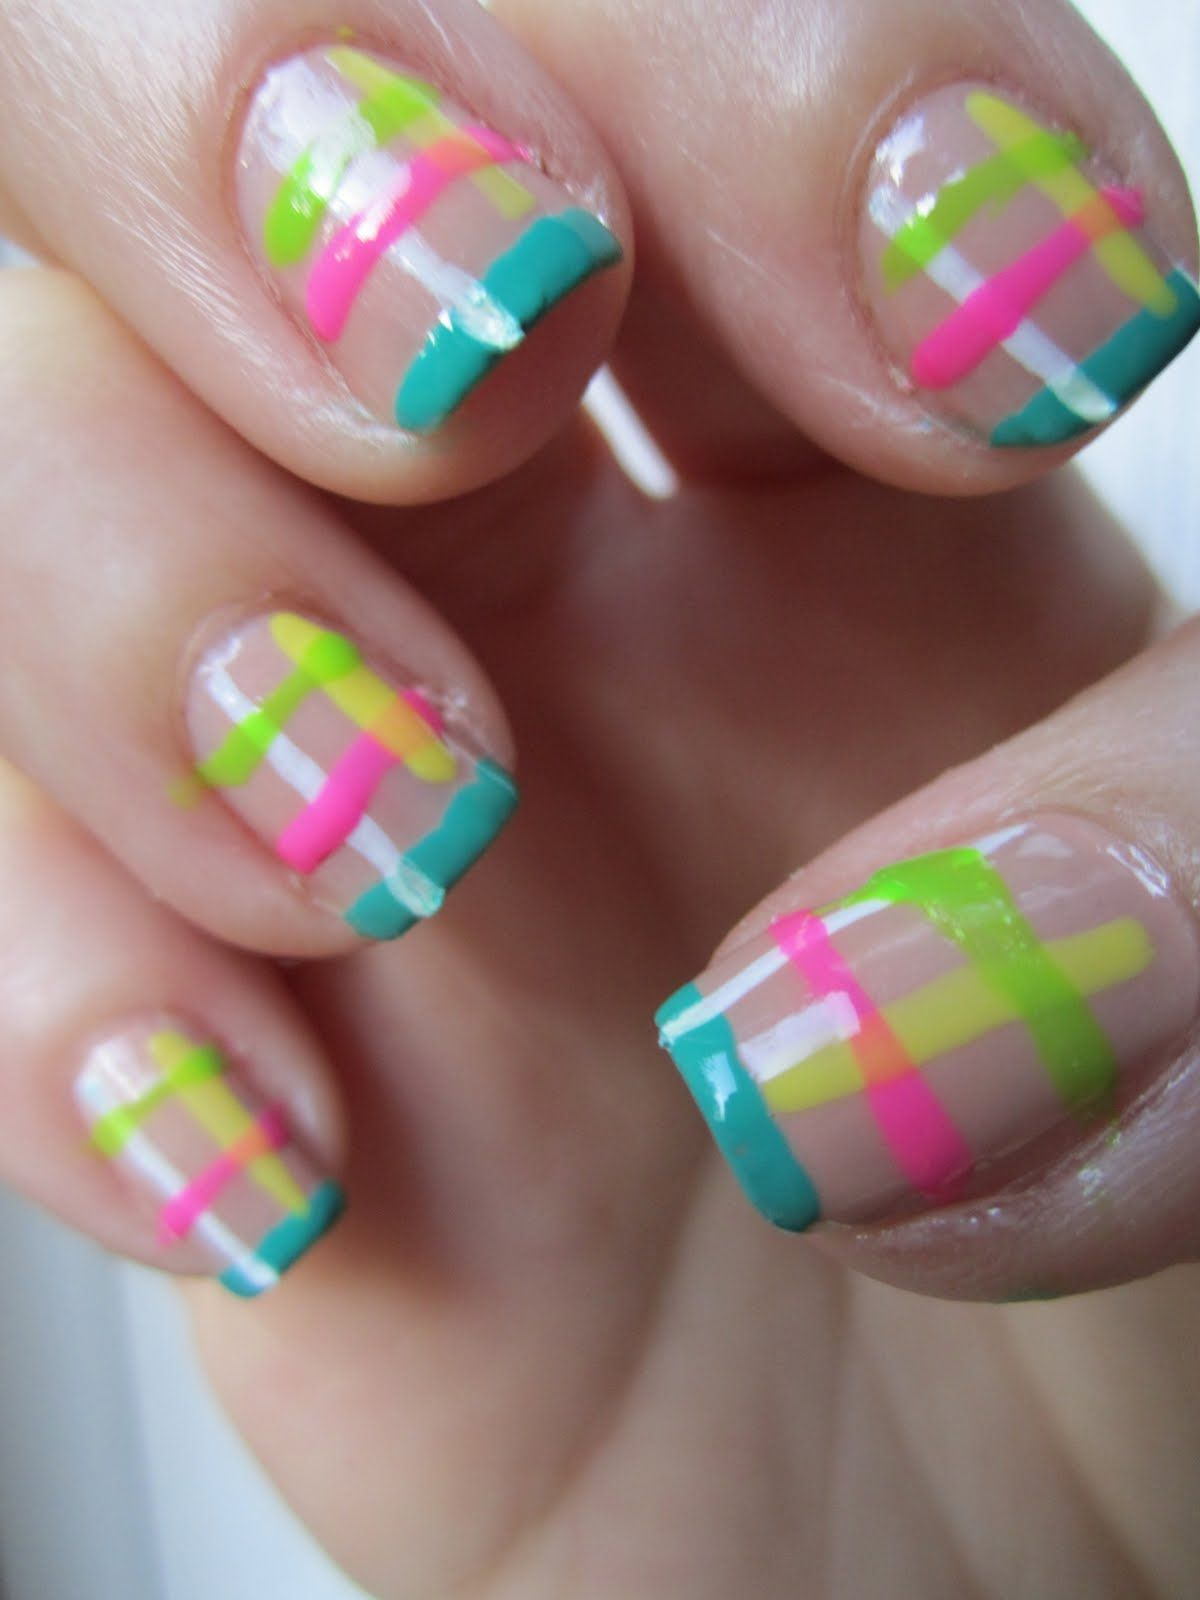 Nude nails with neon, brights, stripes, teal, turquoise, pink, white ...